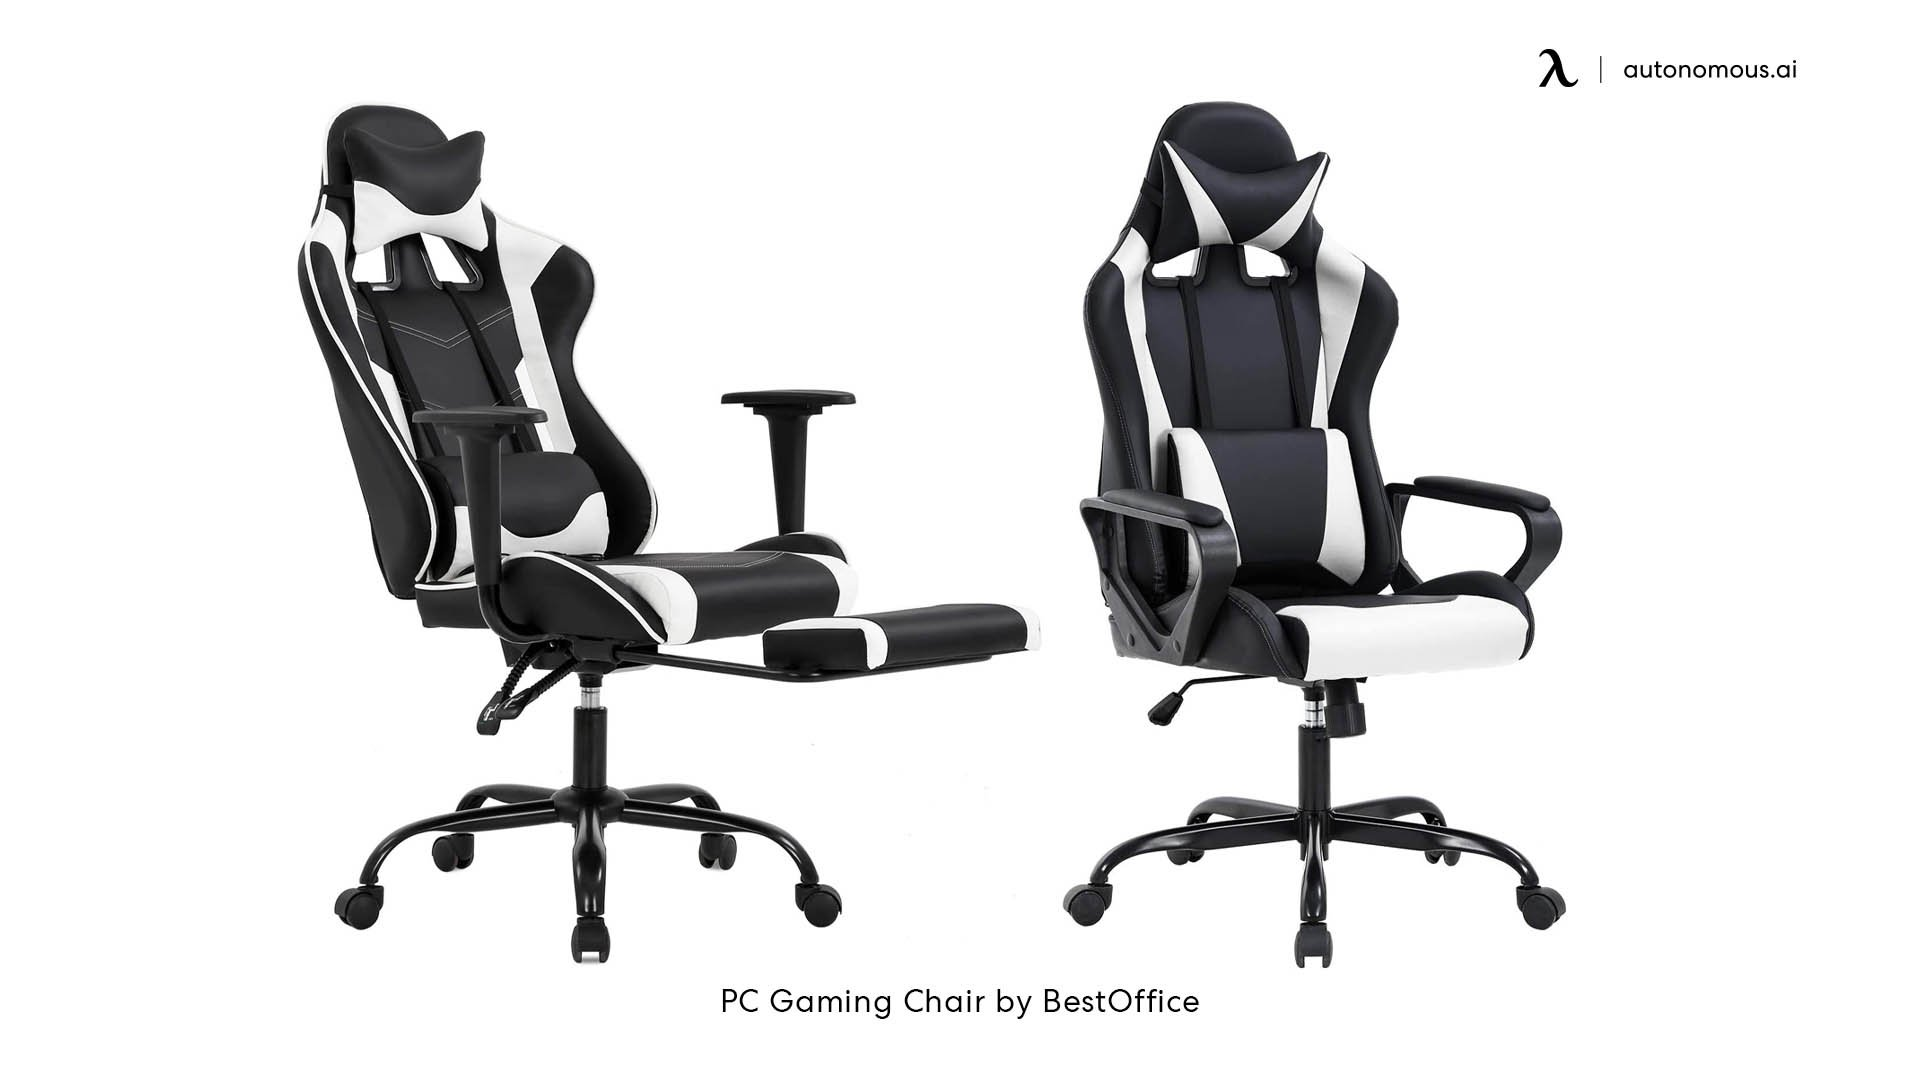 PC Gaming Chair by BestOffice